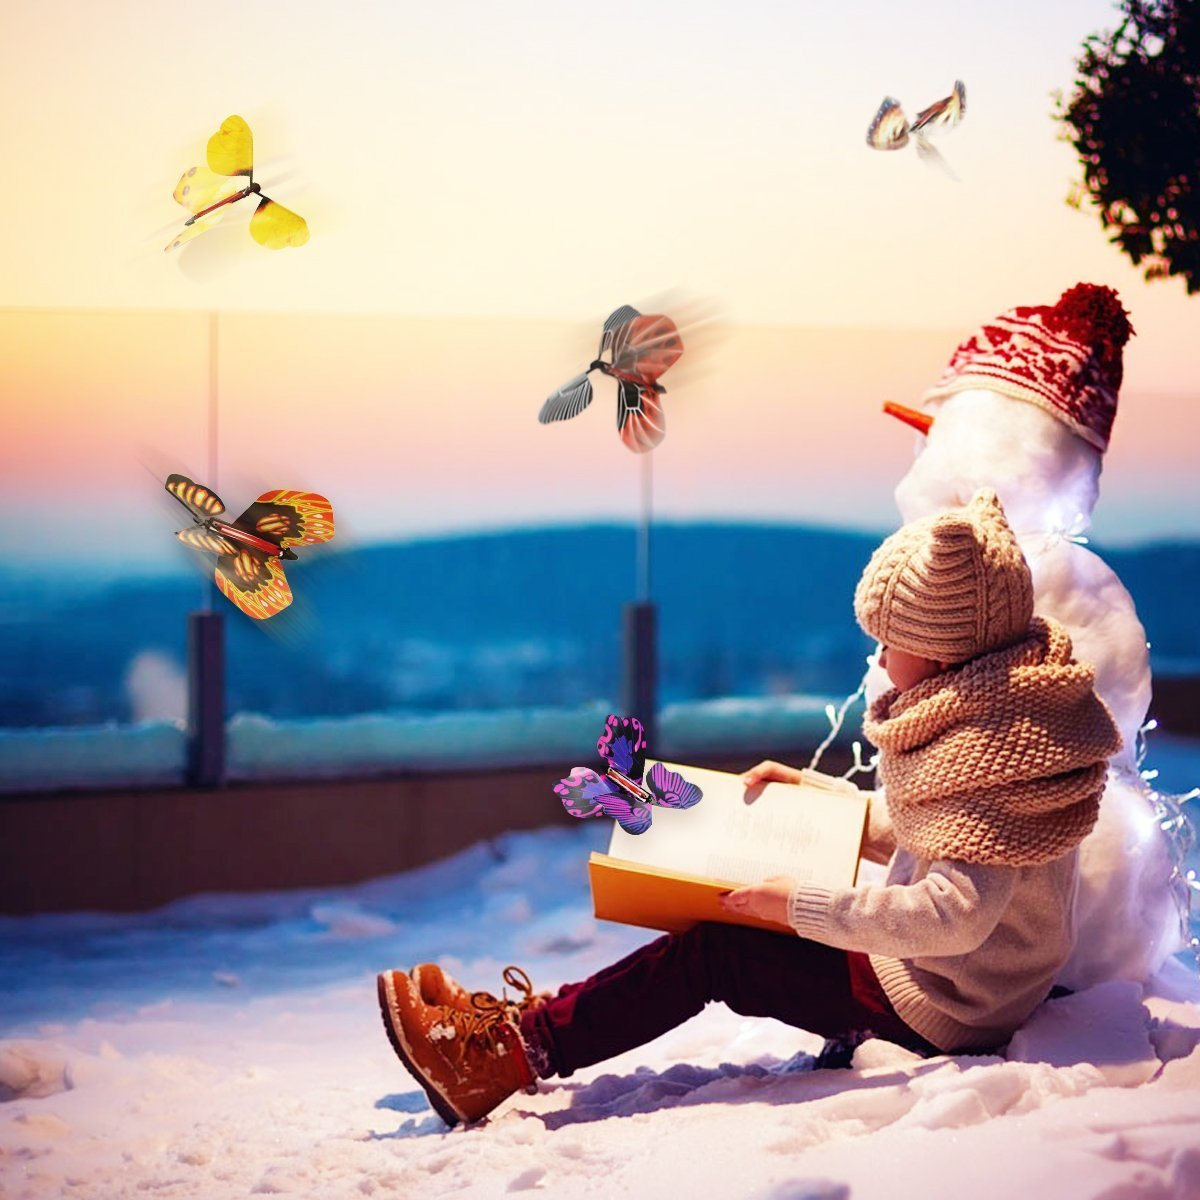 ☃【Winter Sales】❄Magic Flying Butterfly